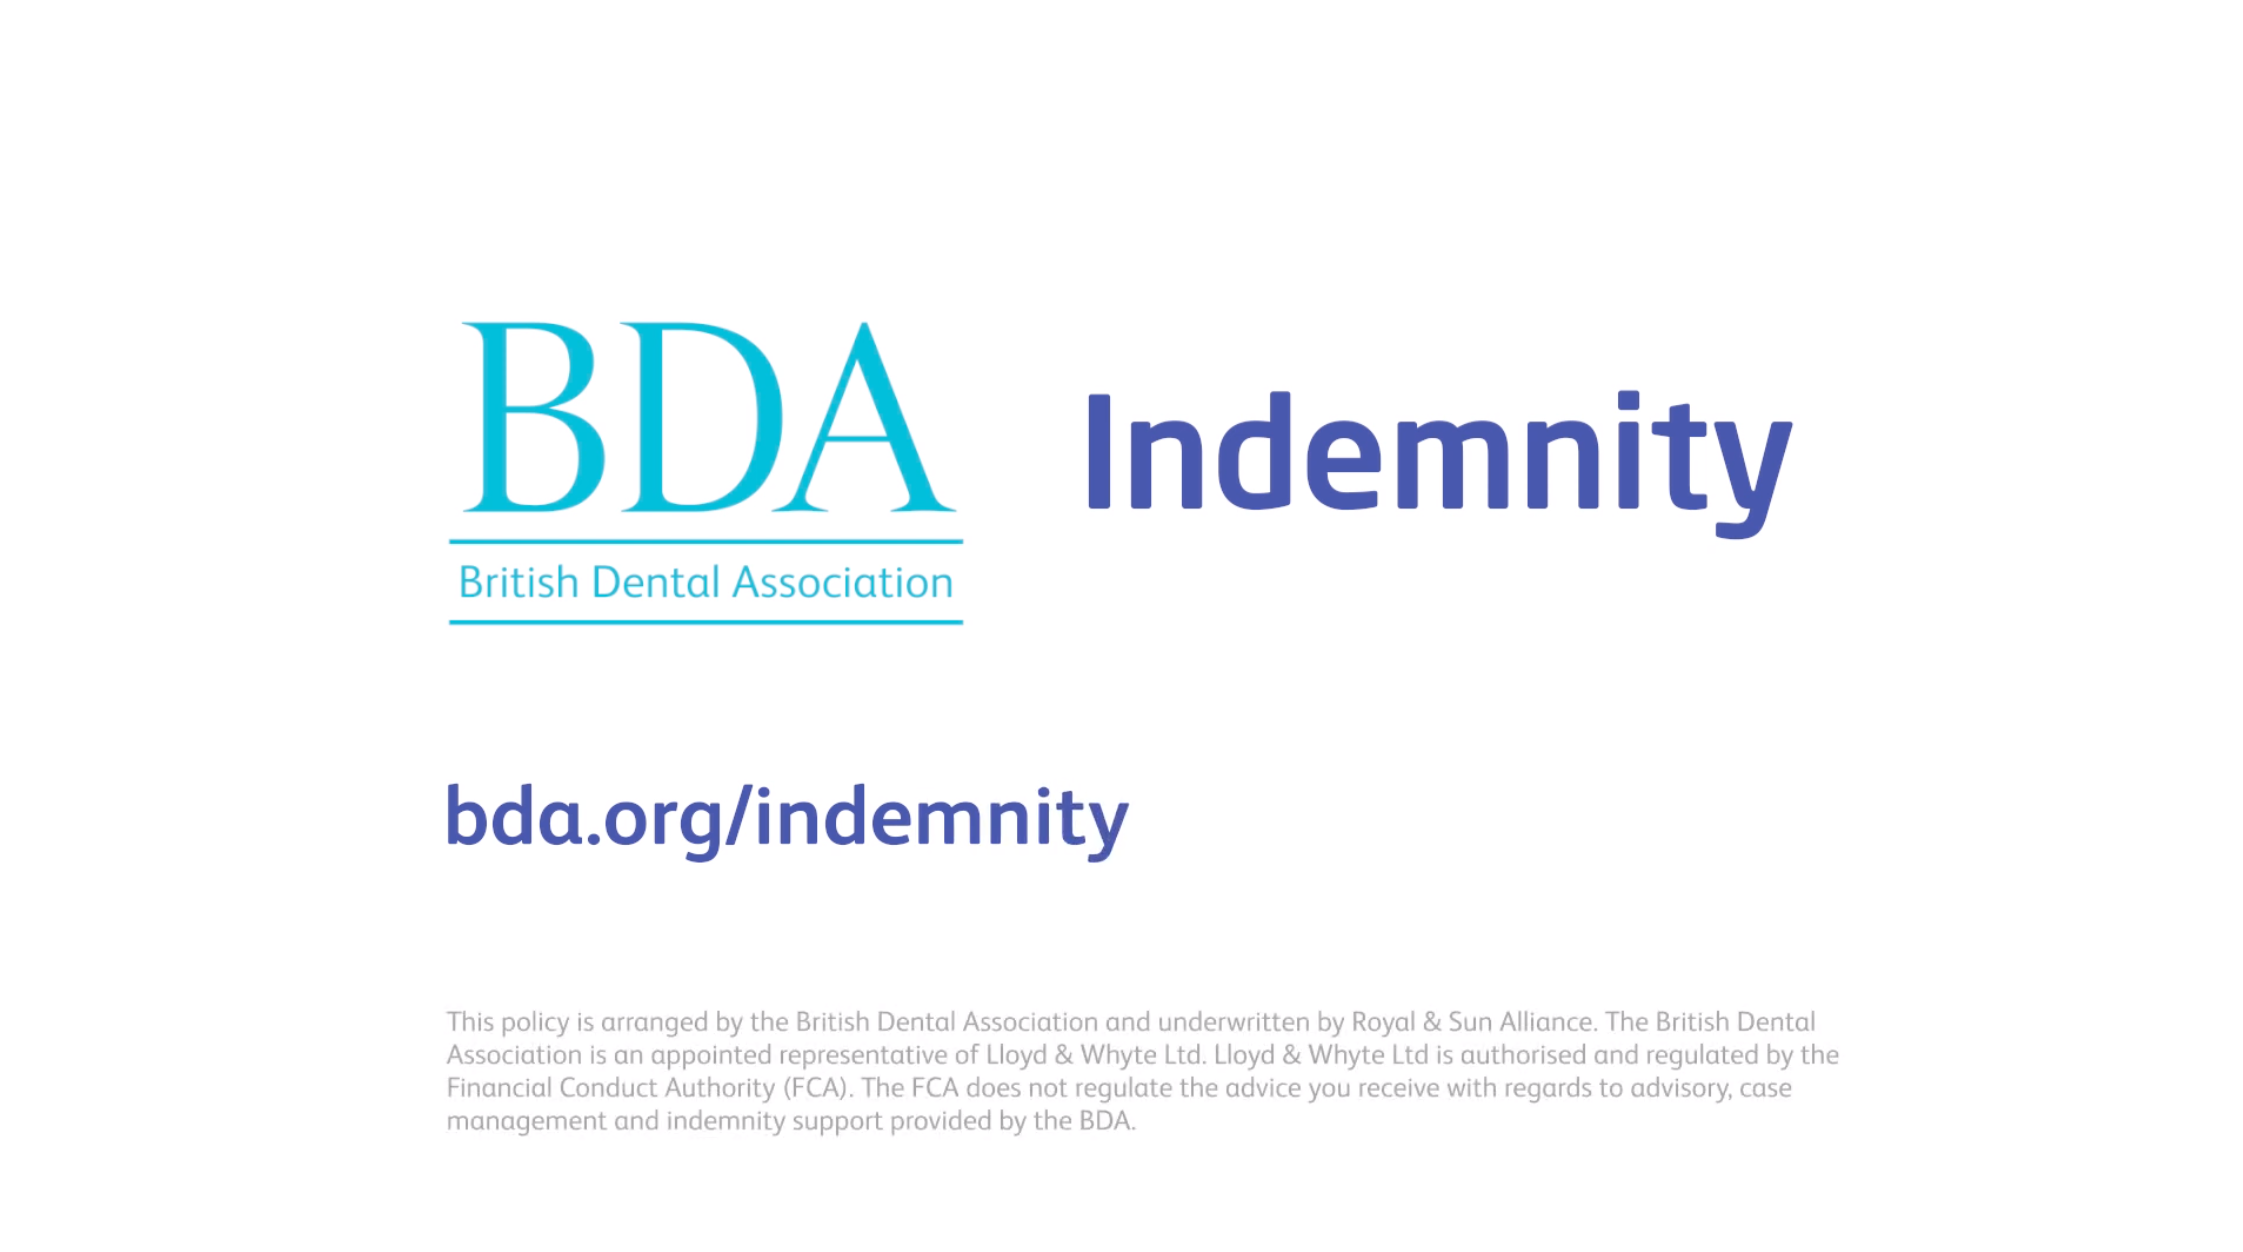 The British Dental Association